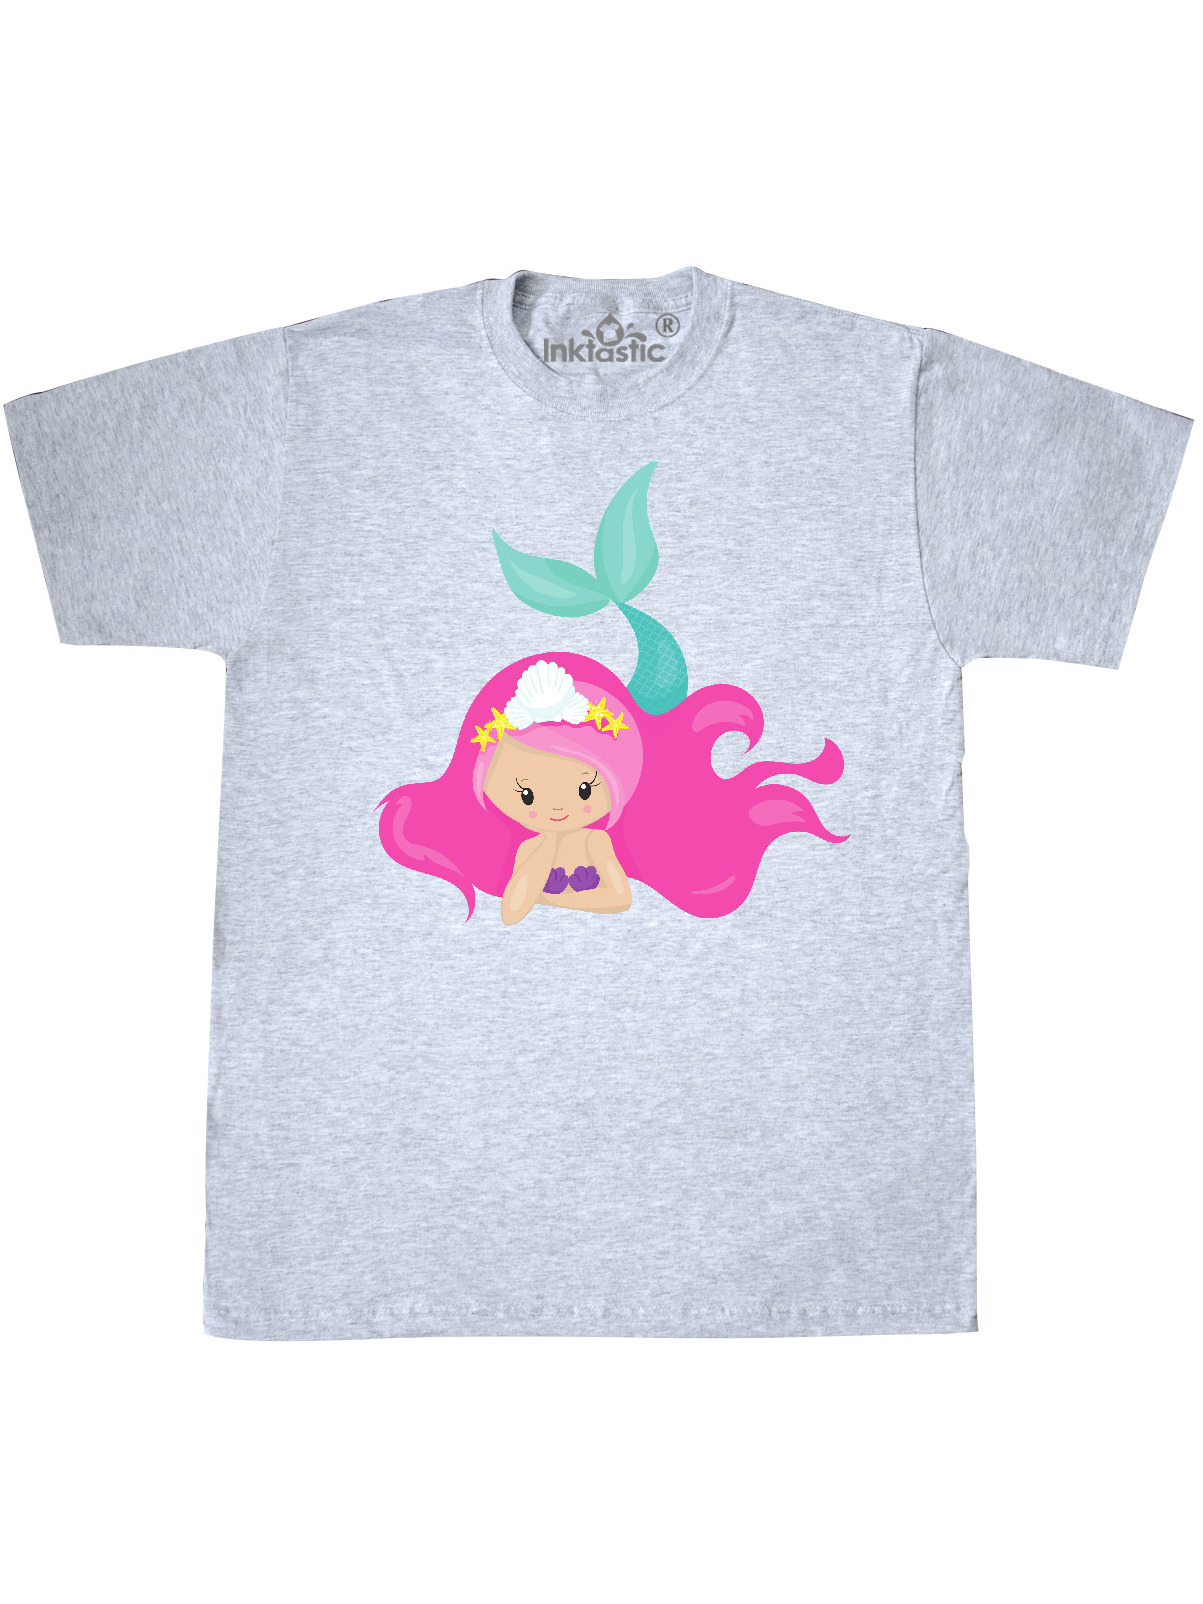 Mermaid with Green Tail Toddler T-Shirt inktastic Summer is My Season